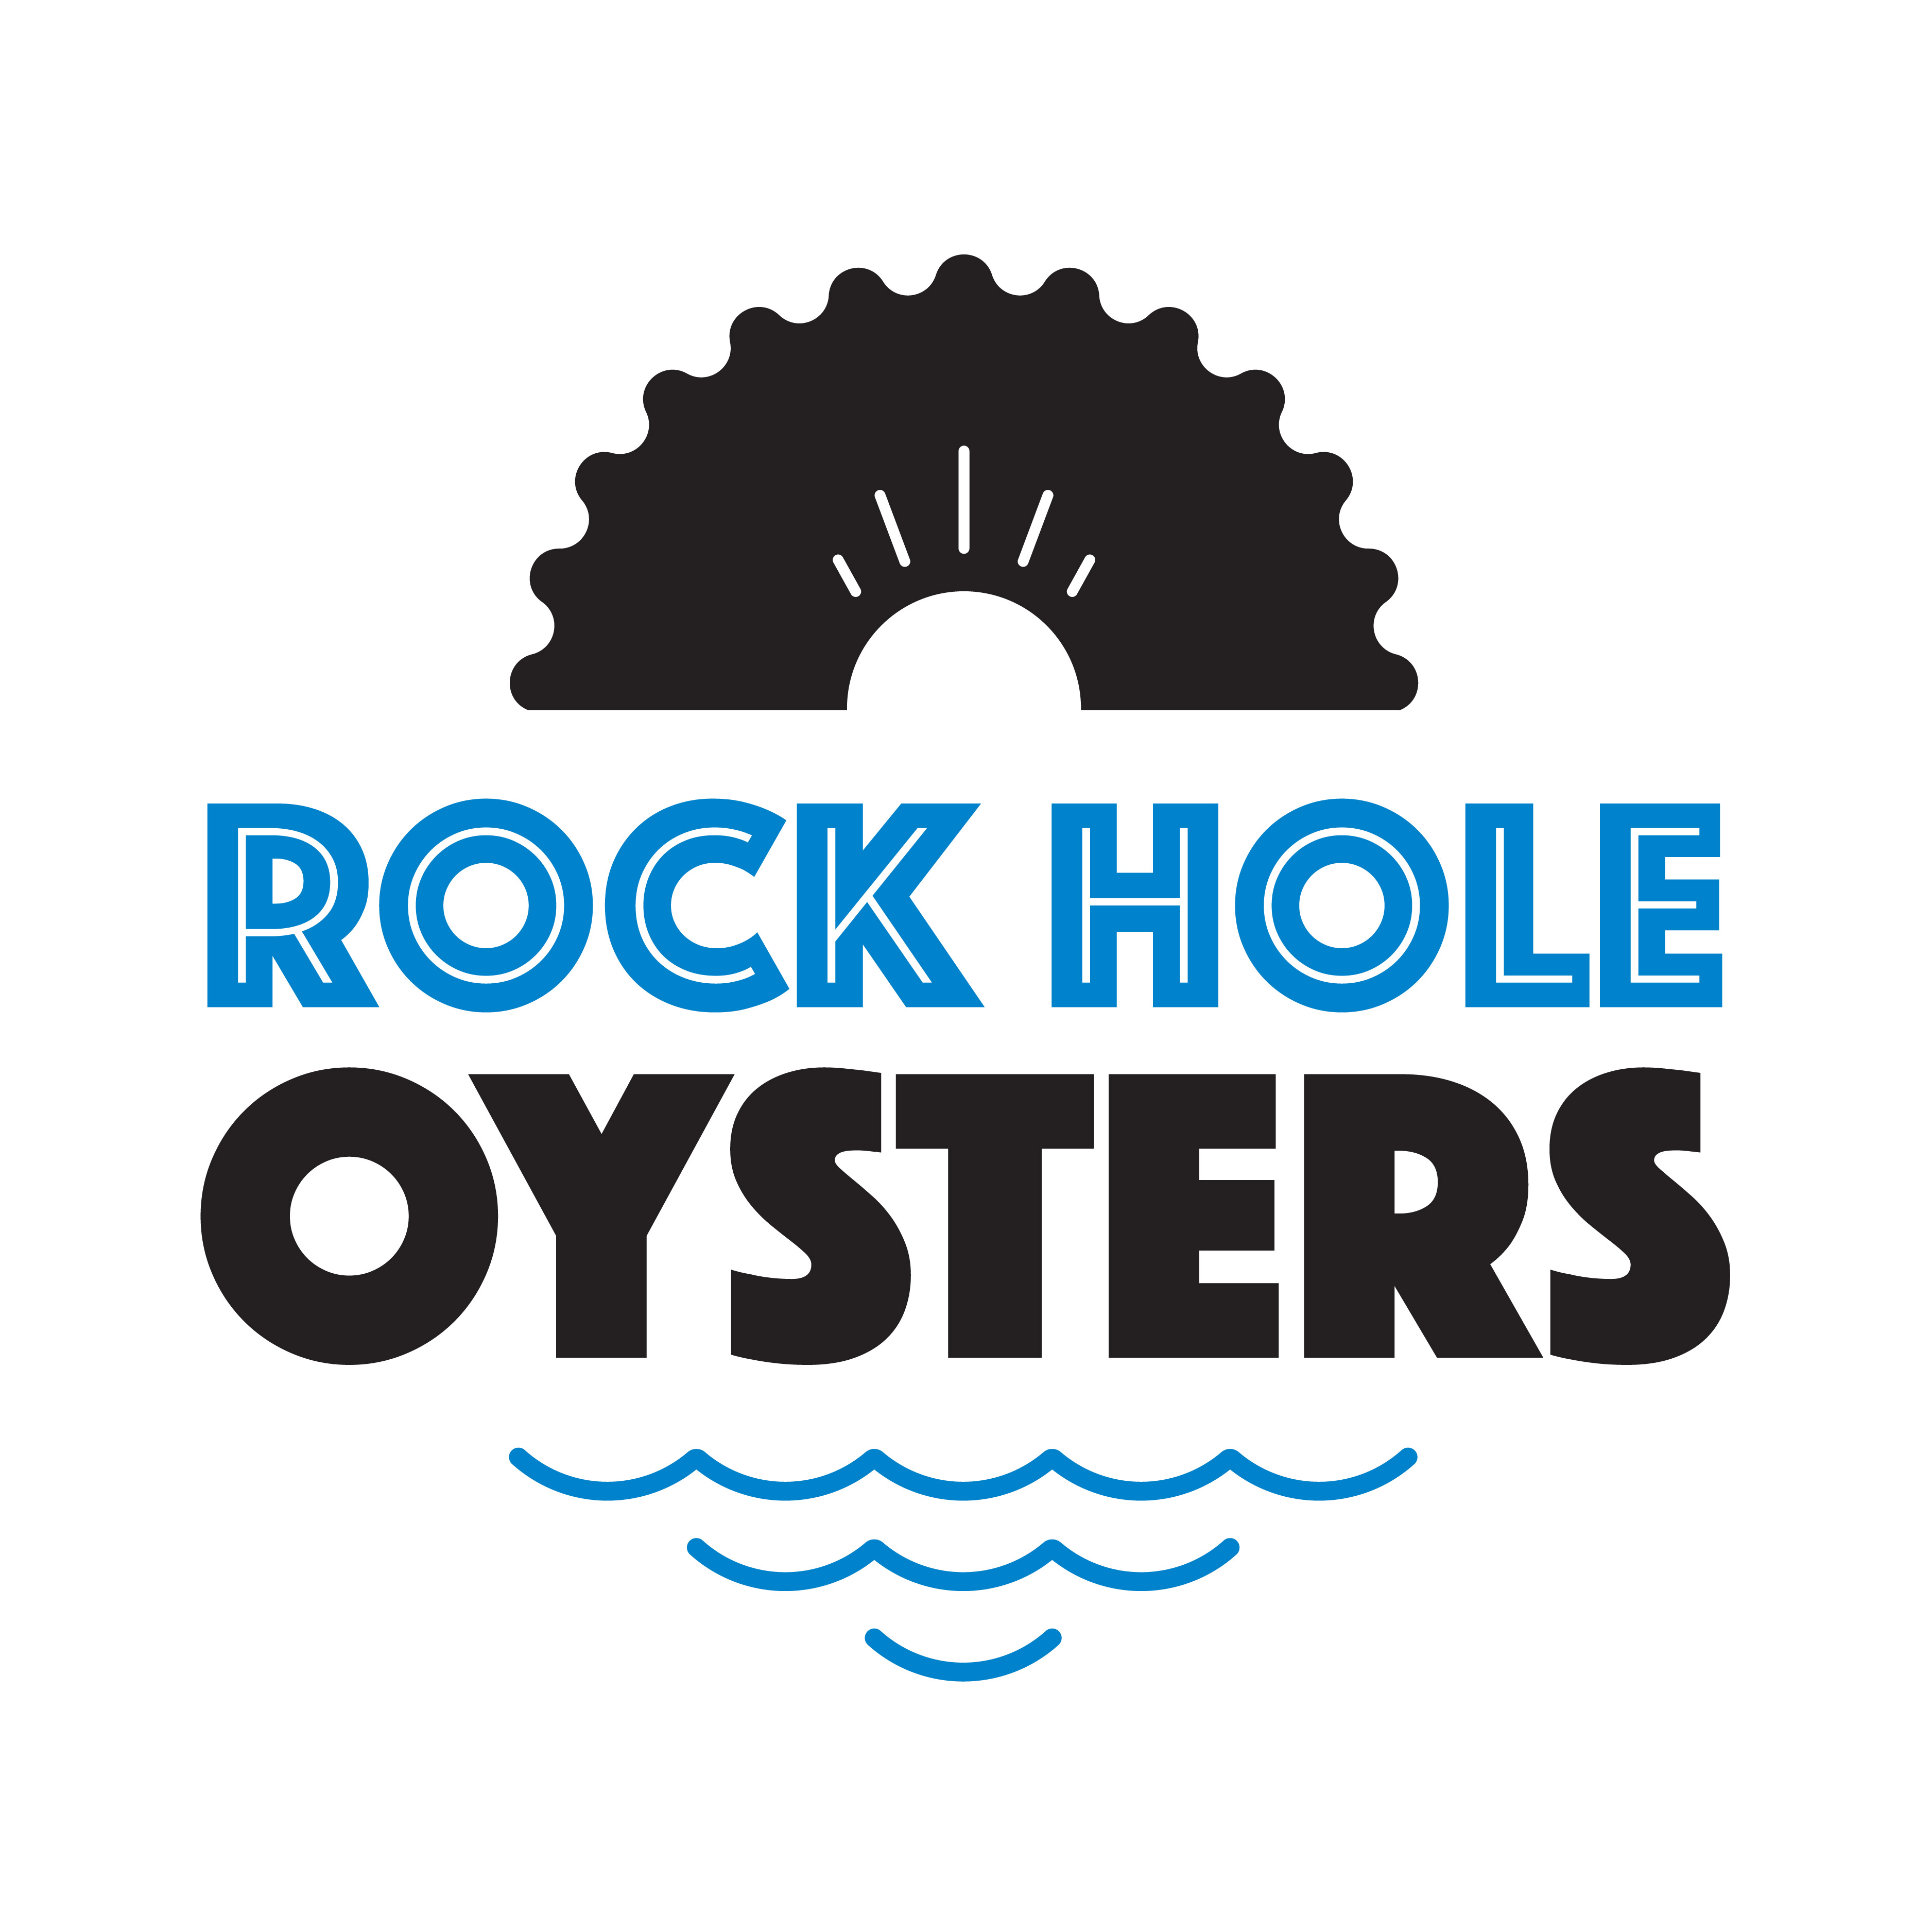 Rock Hole Oysters